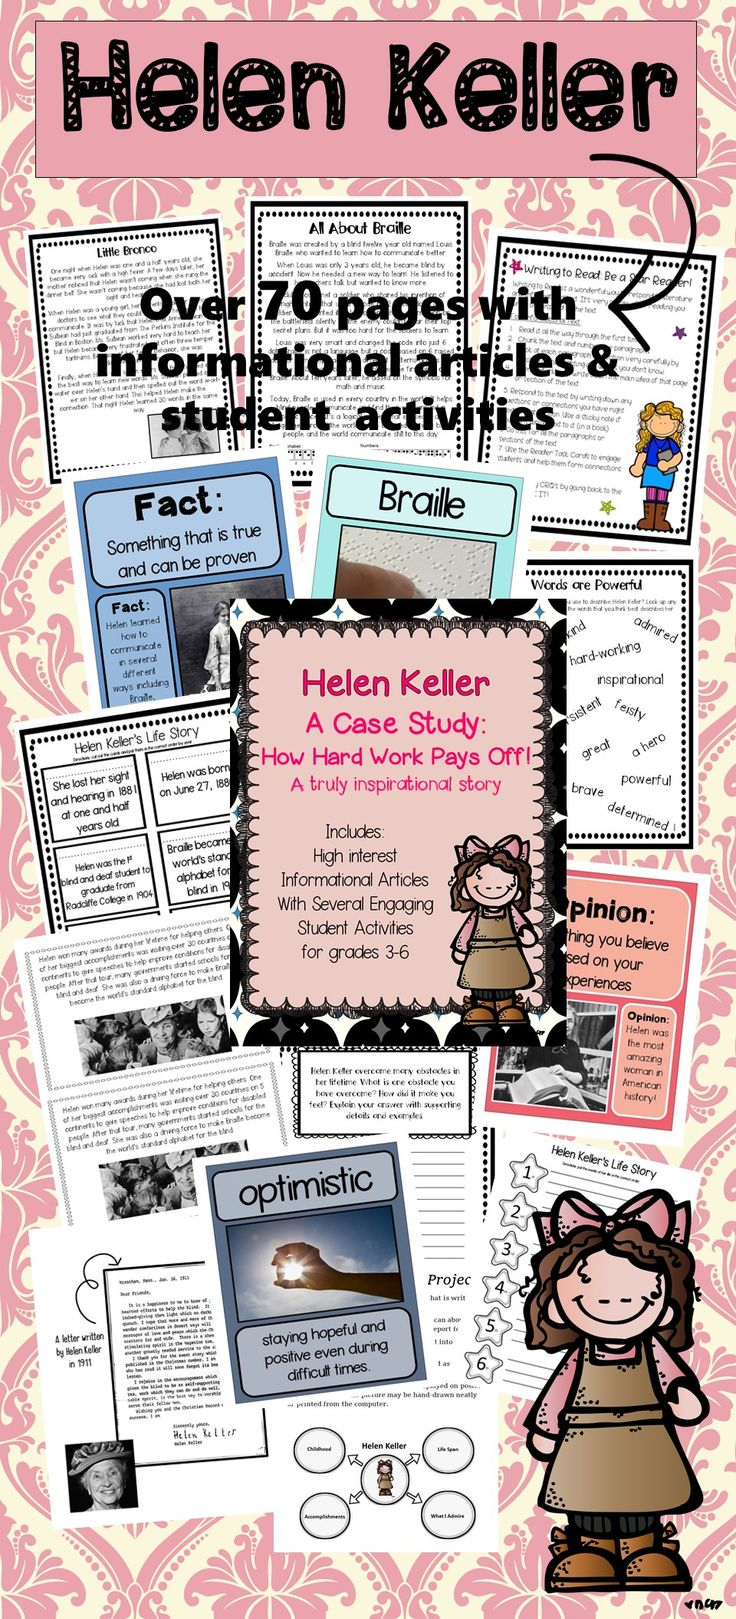 Helen Keller was a extraordinary example of how hard work and determination can lead to great accomplishments. Helen persevered and overcame difficult conditions and went on to become an inspirational leader who helped many people all across the world. In this unit, students will learn all about Helen Keller's incredible life story through high interest informational articles and engaging learning activities!